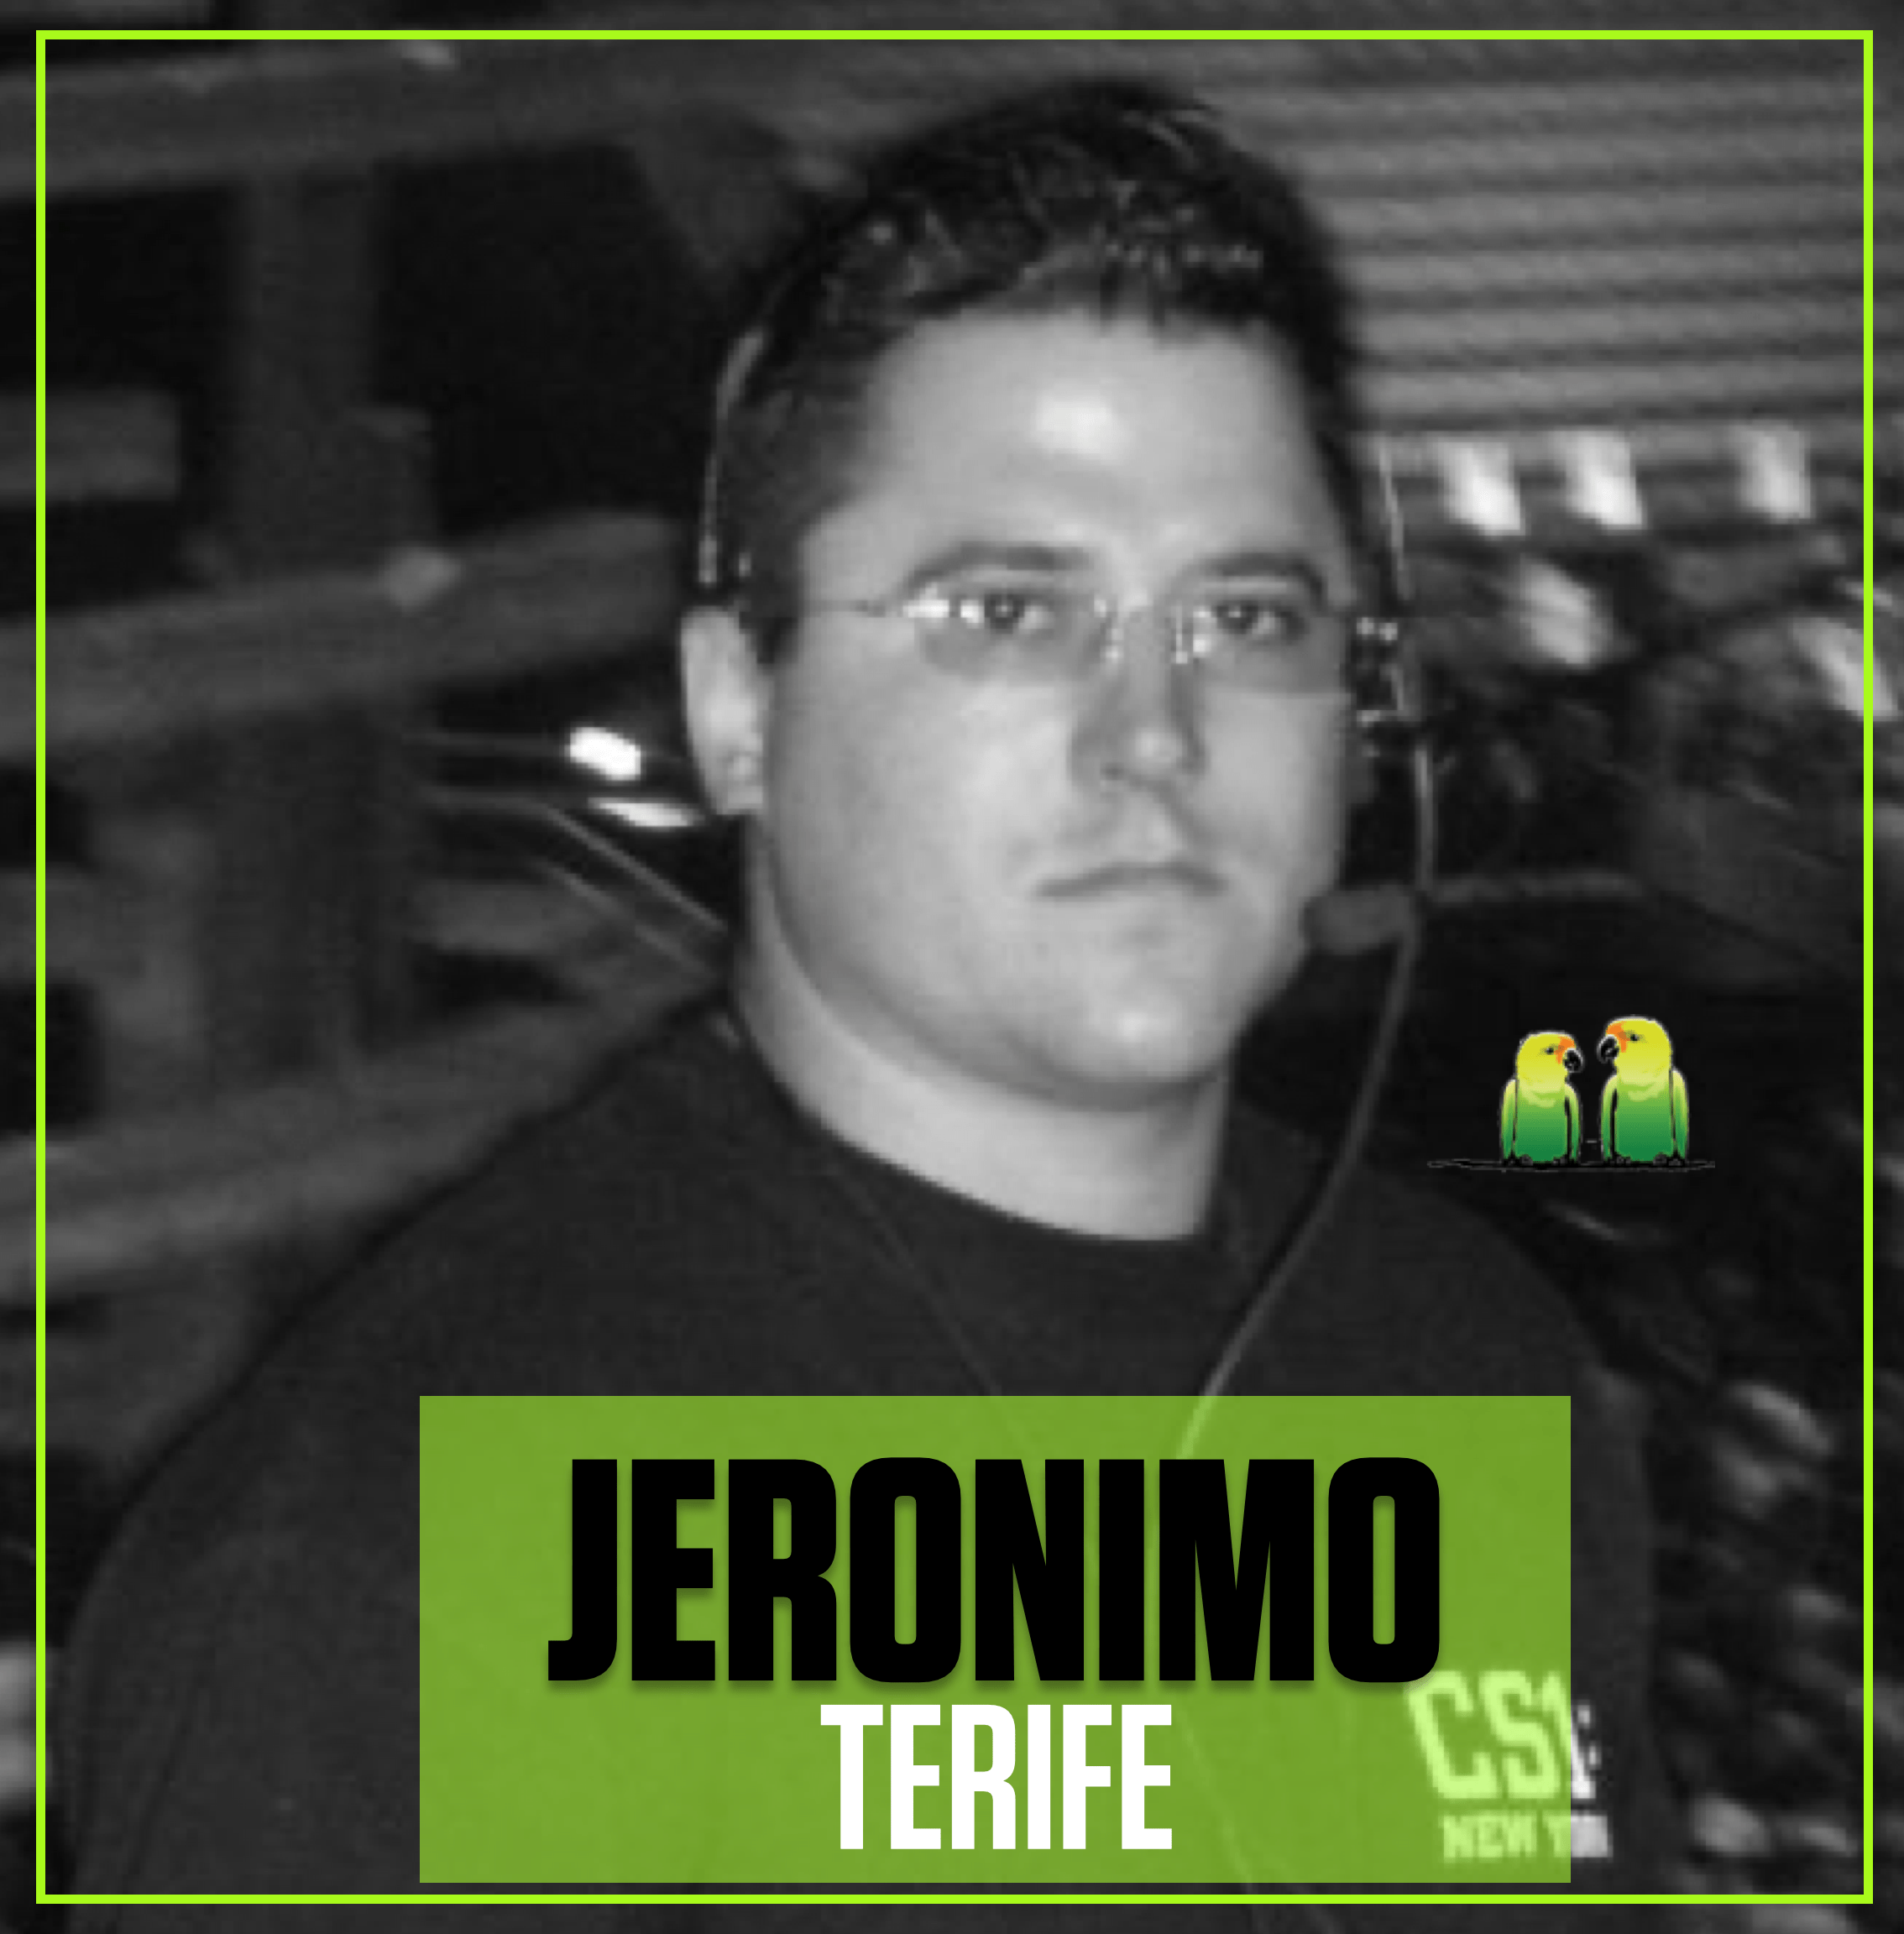 Jeronimo Terife